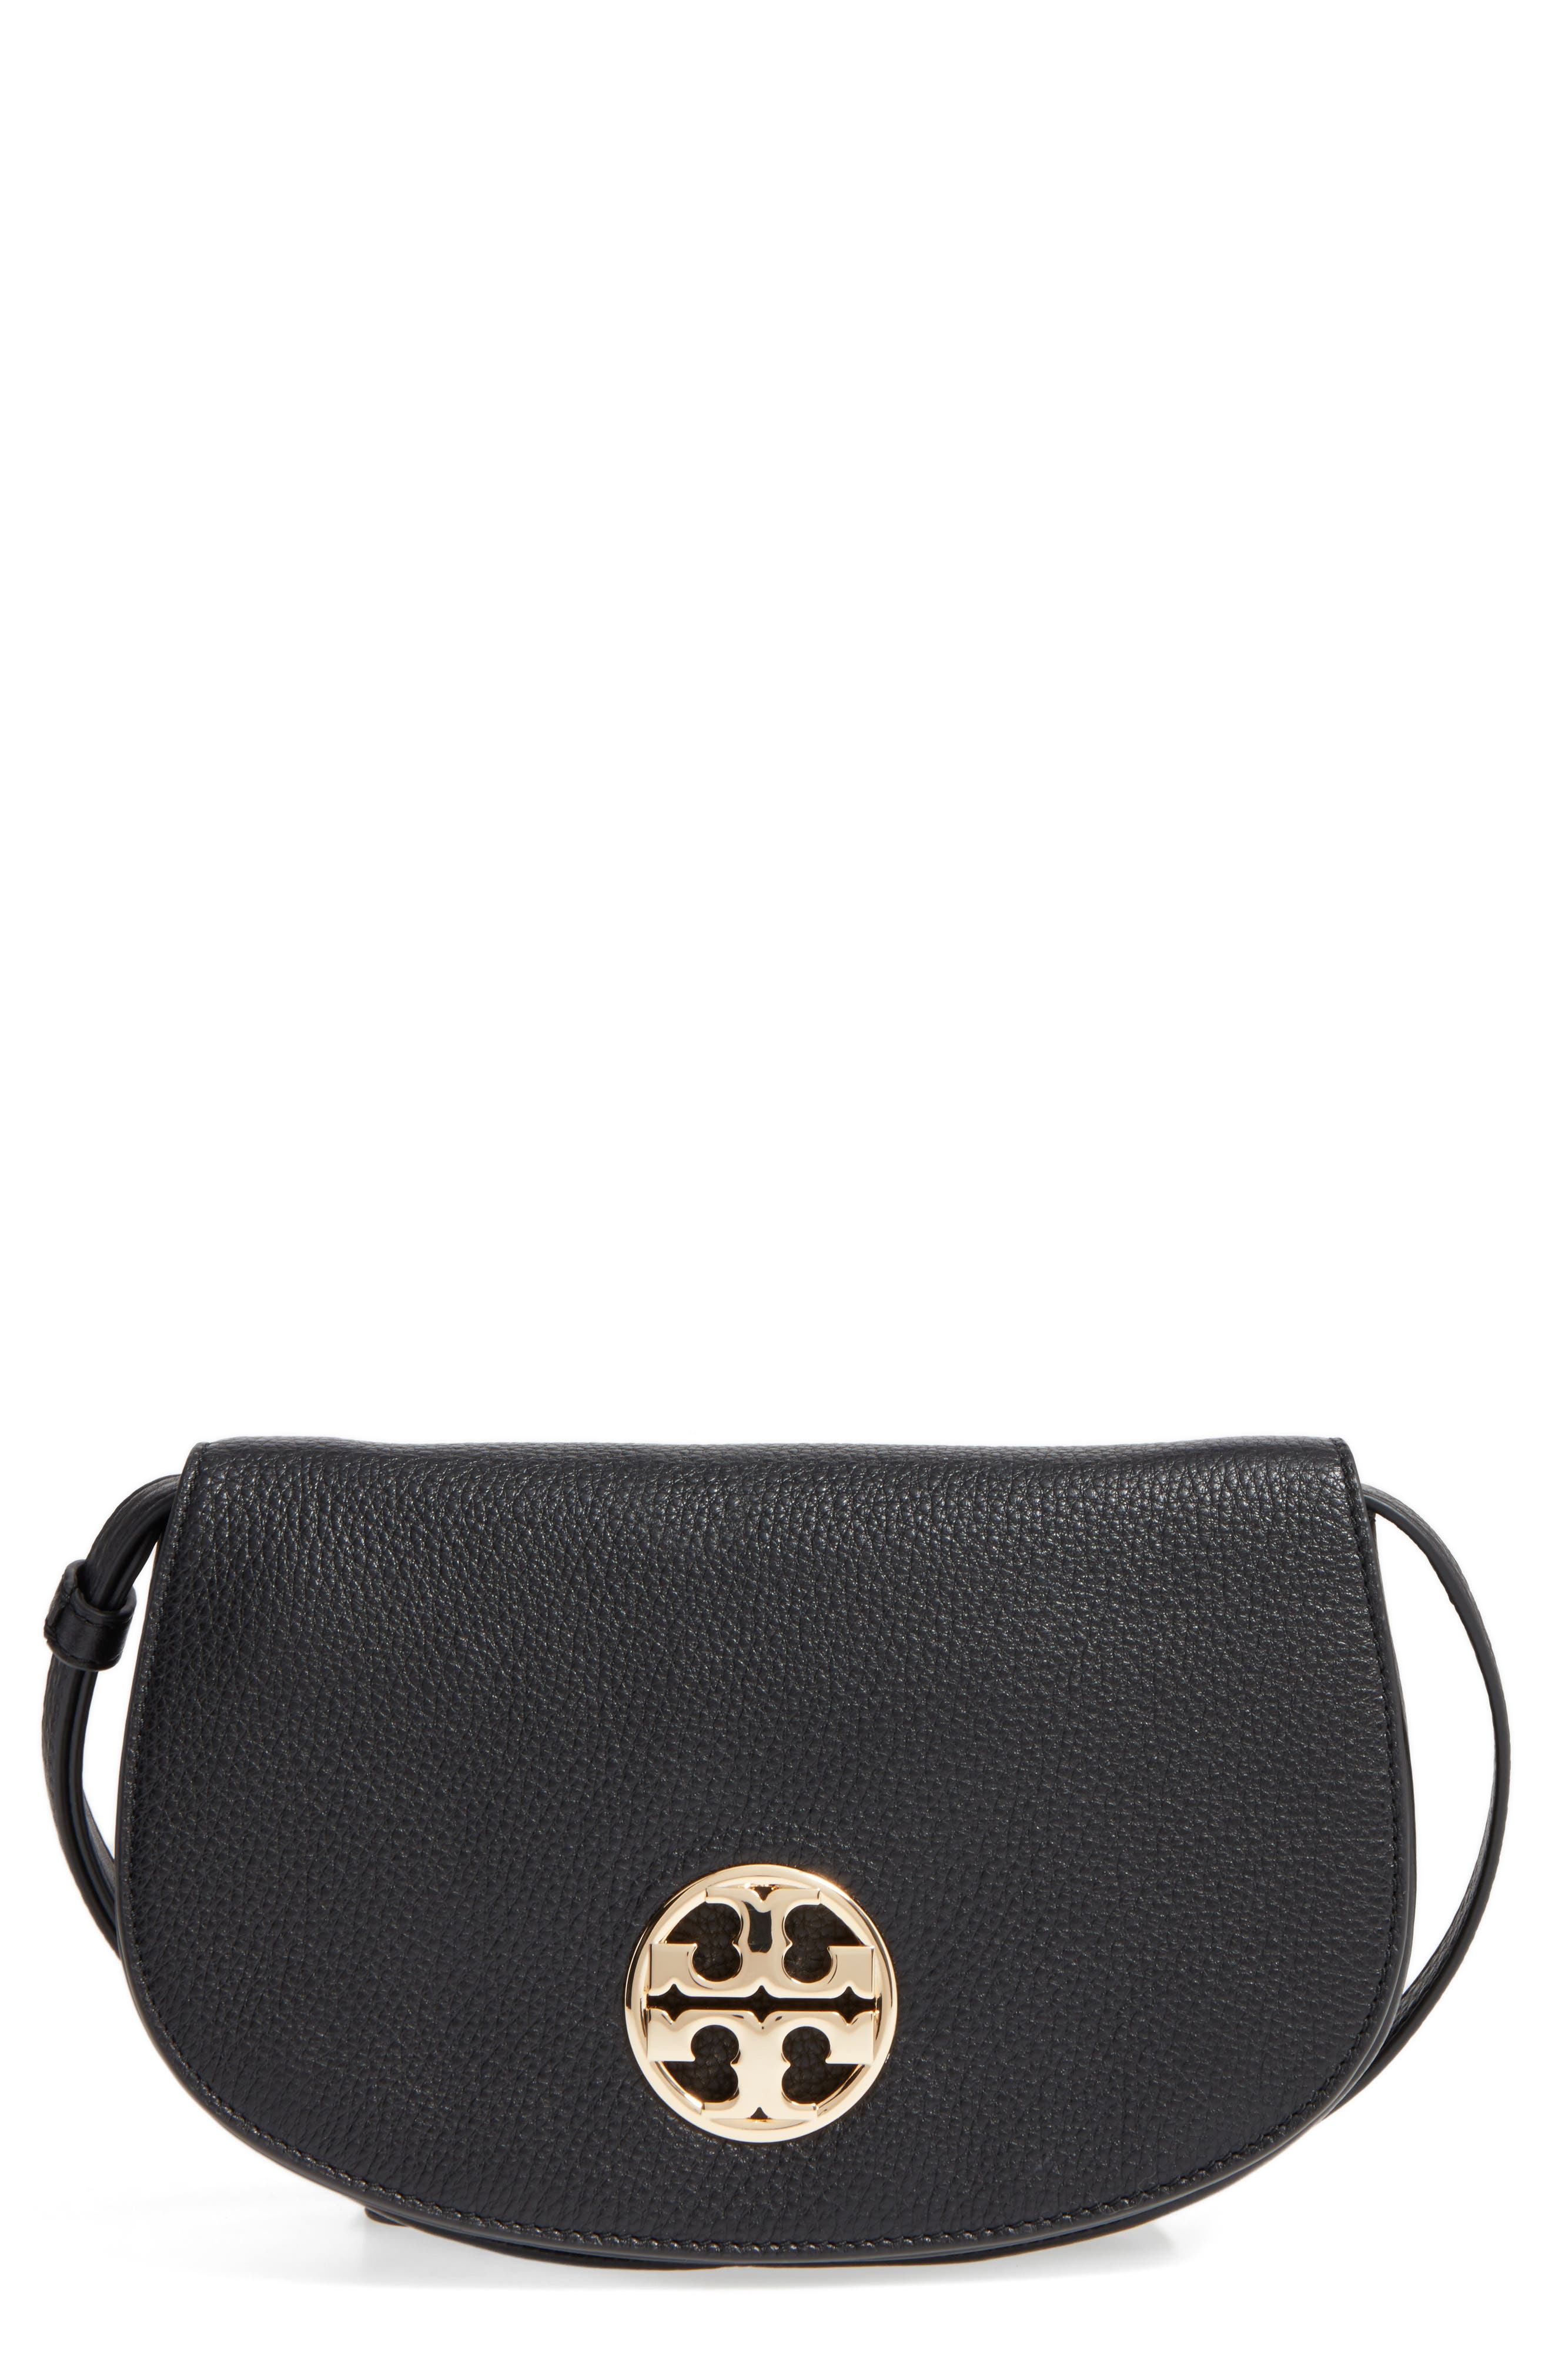 TORY BURCH, Jamie Convertible Leather Clutch, Main thumbnail 1, color, 001